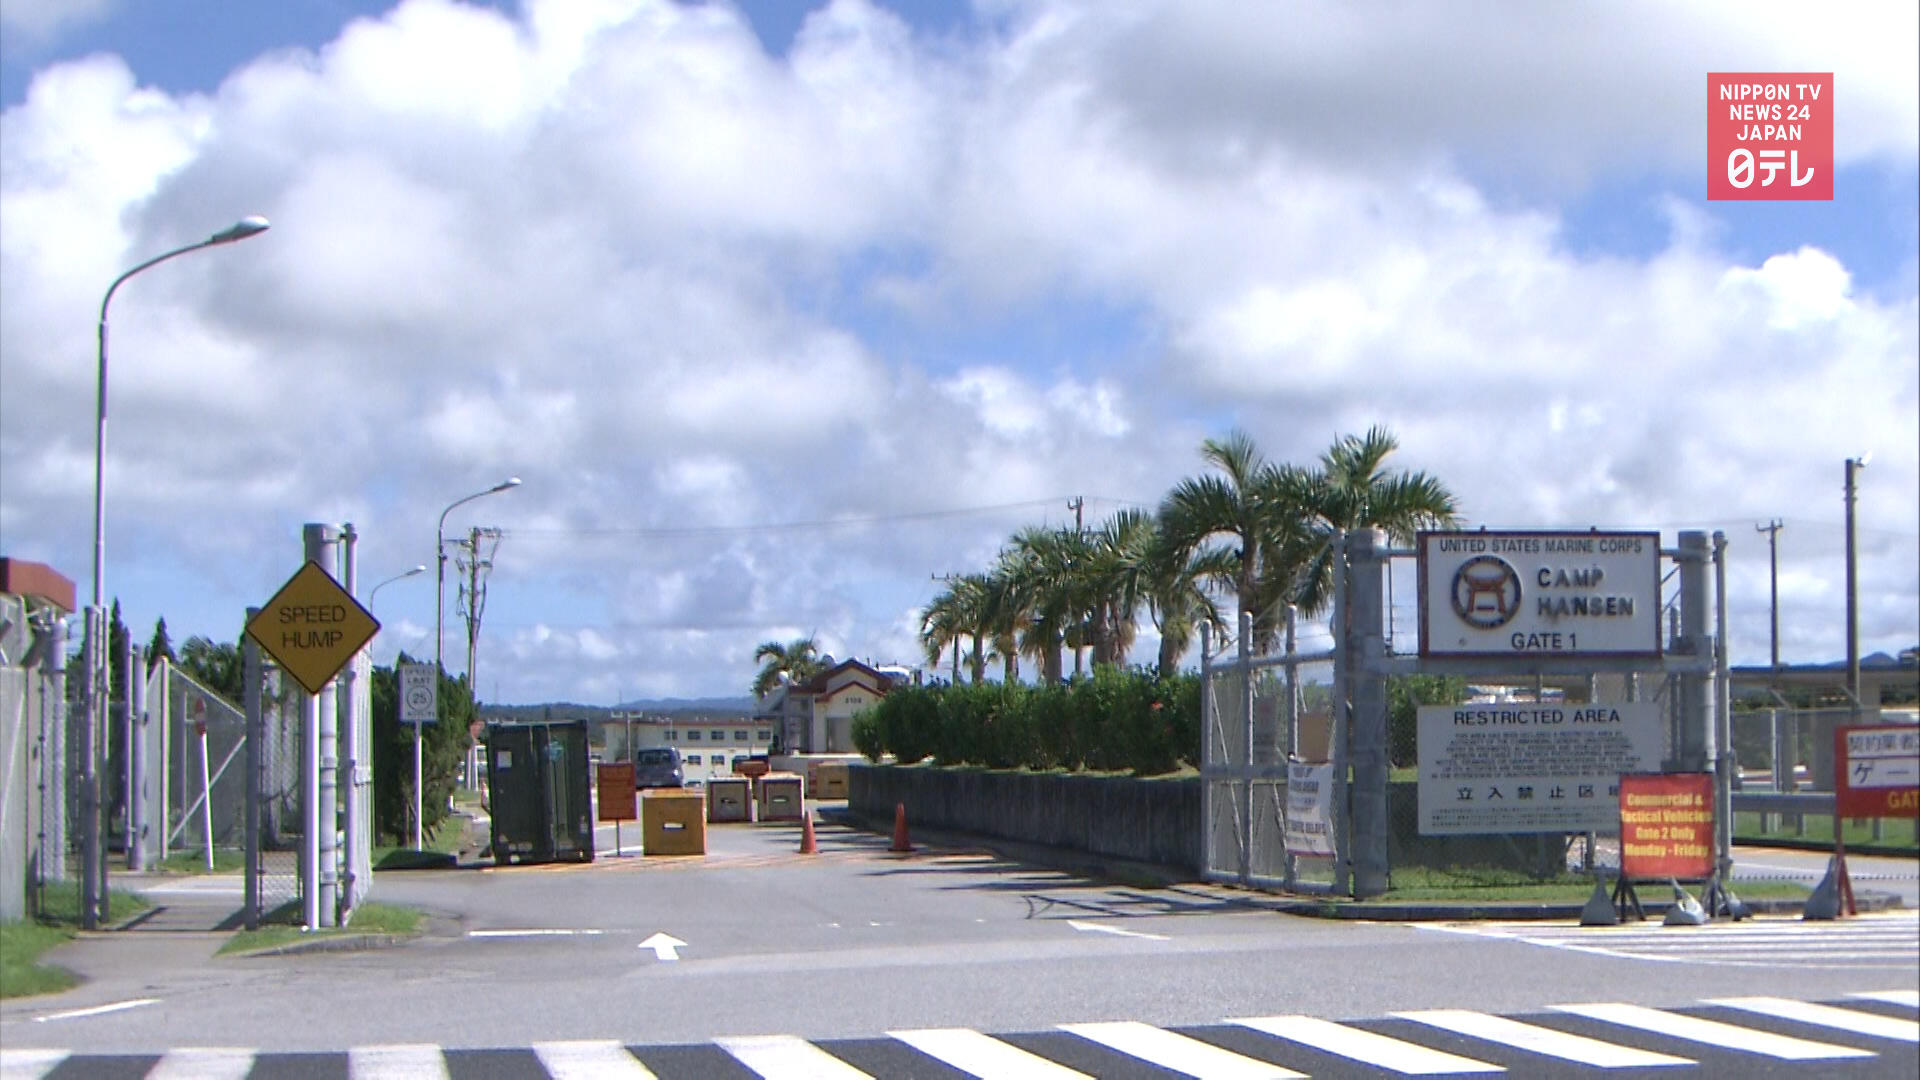 94 coronavirus cases at US bases in Okinawa in a week